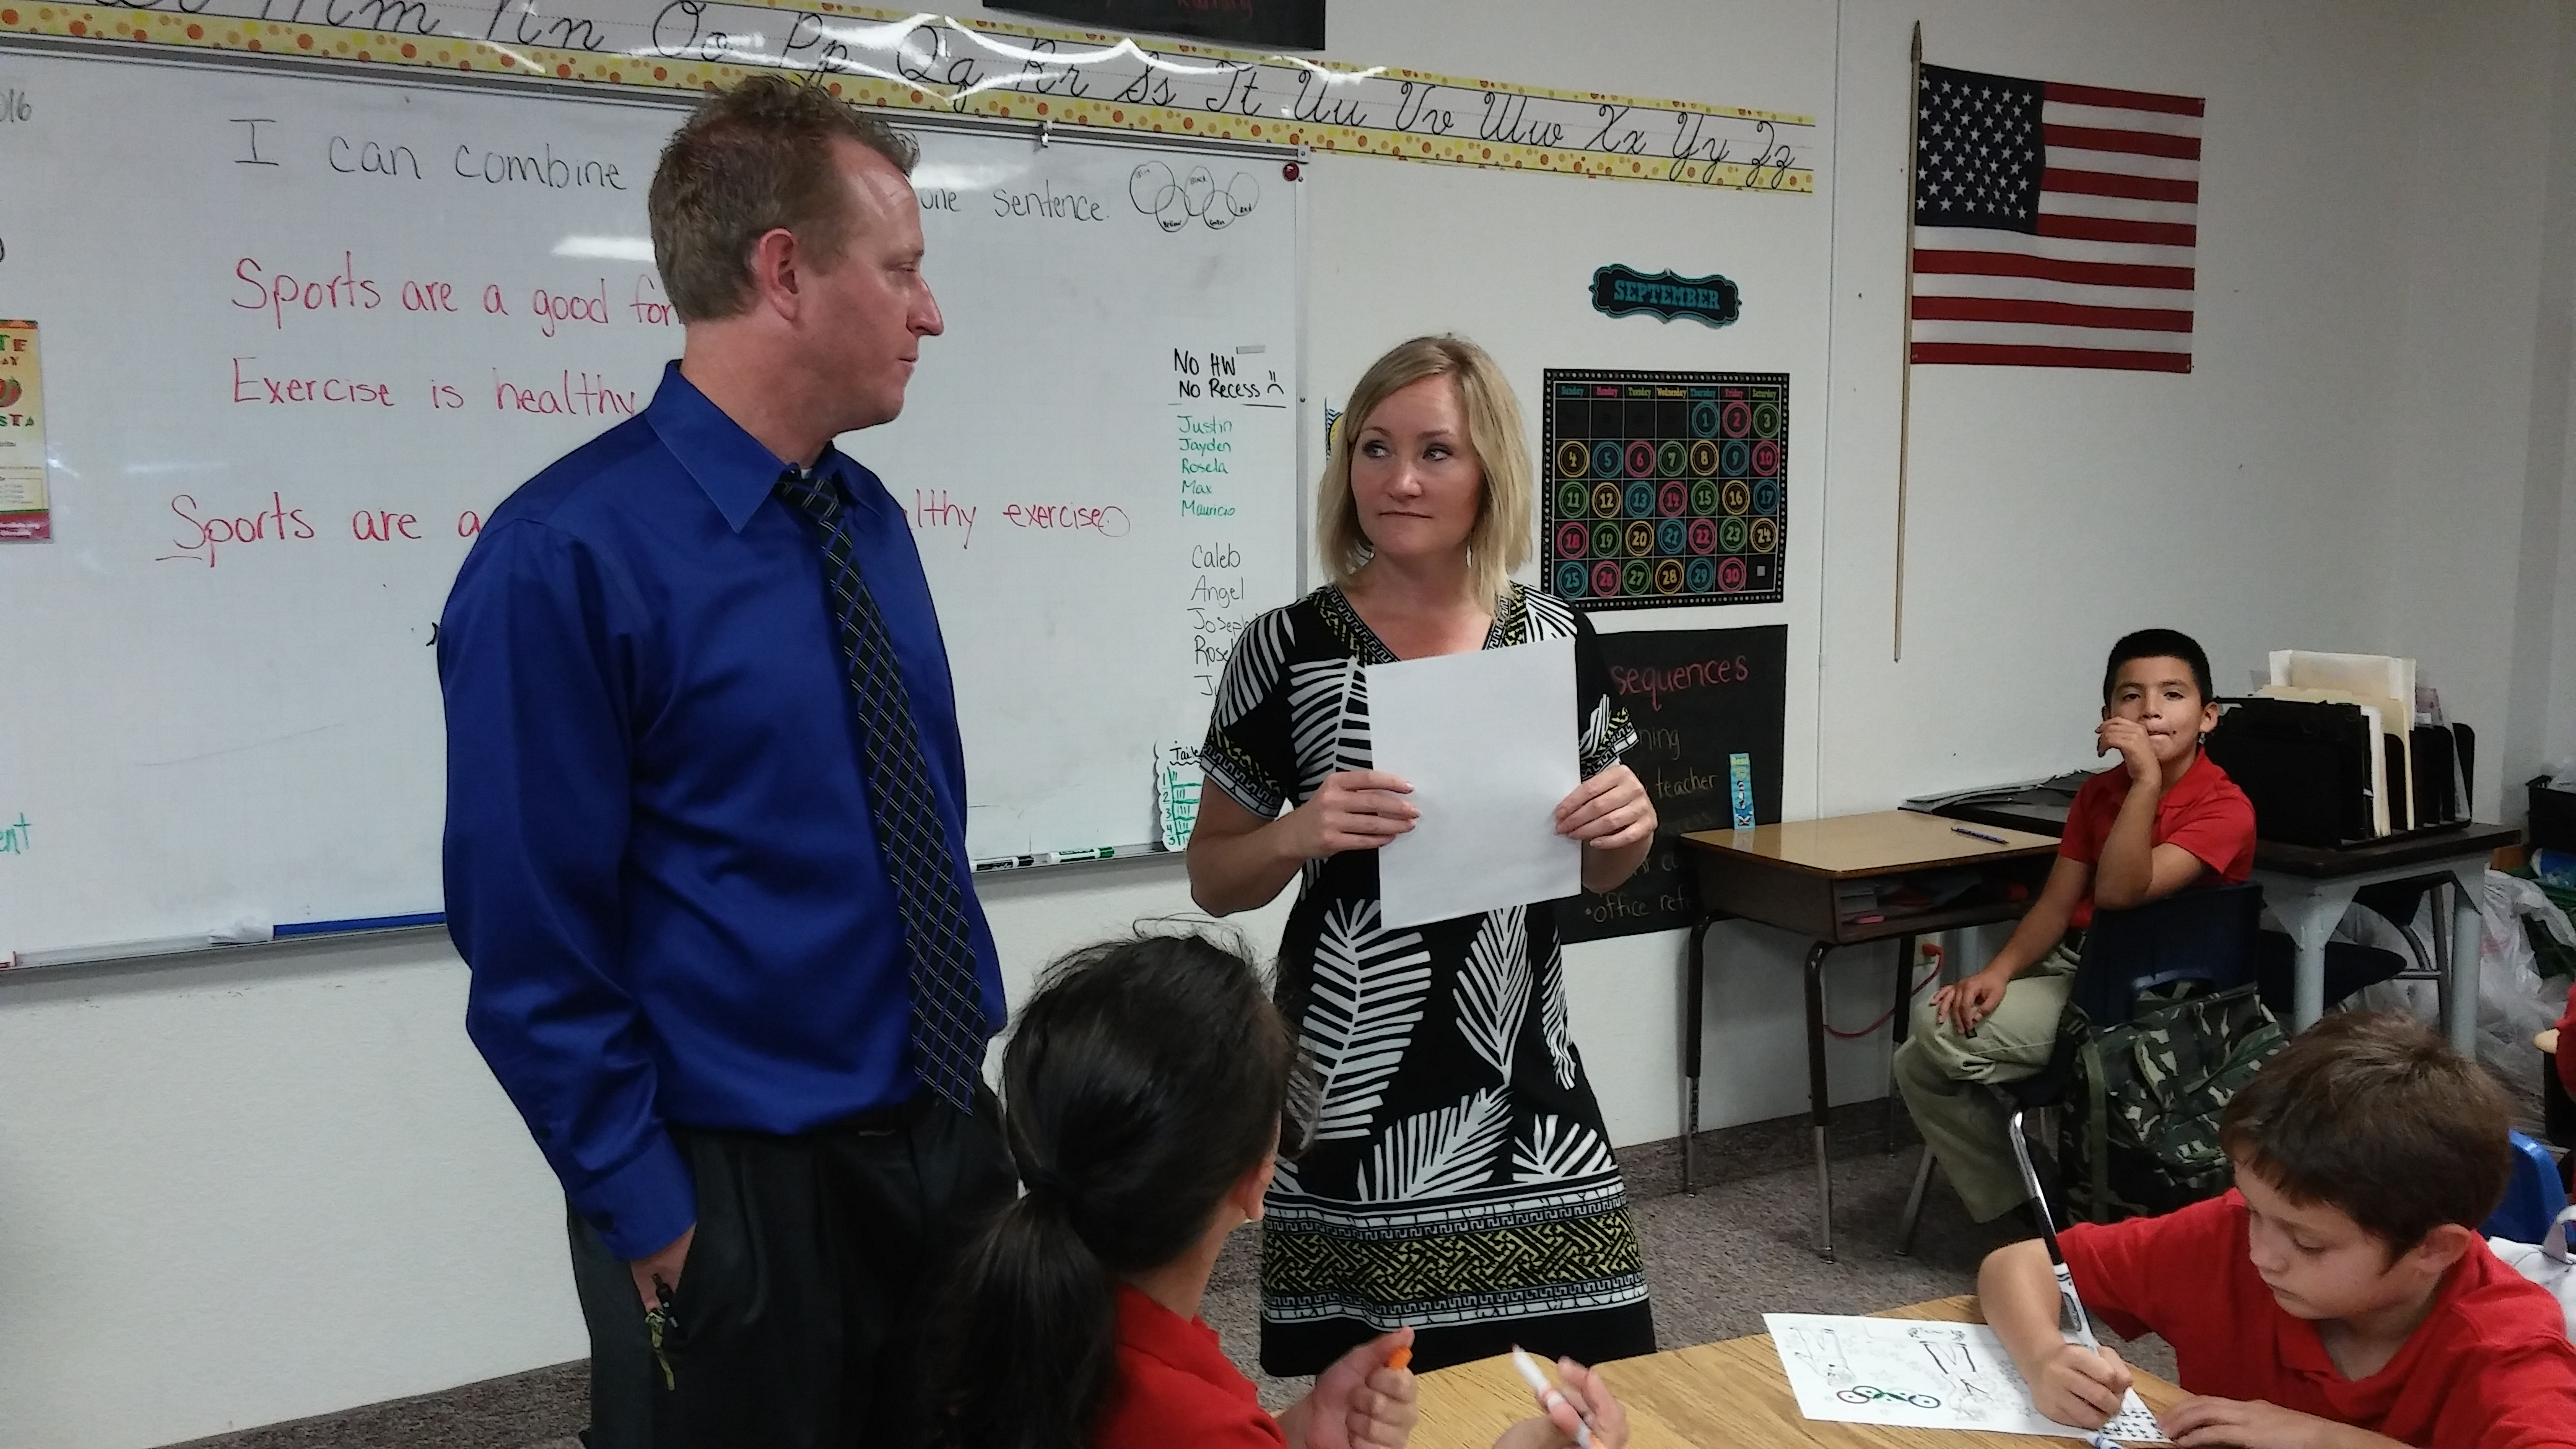 Heritage Elementary school Glendale campus Principal Justin Dye and fourth grade teacher Kyle Shippy discuss the day's lesson plan.